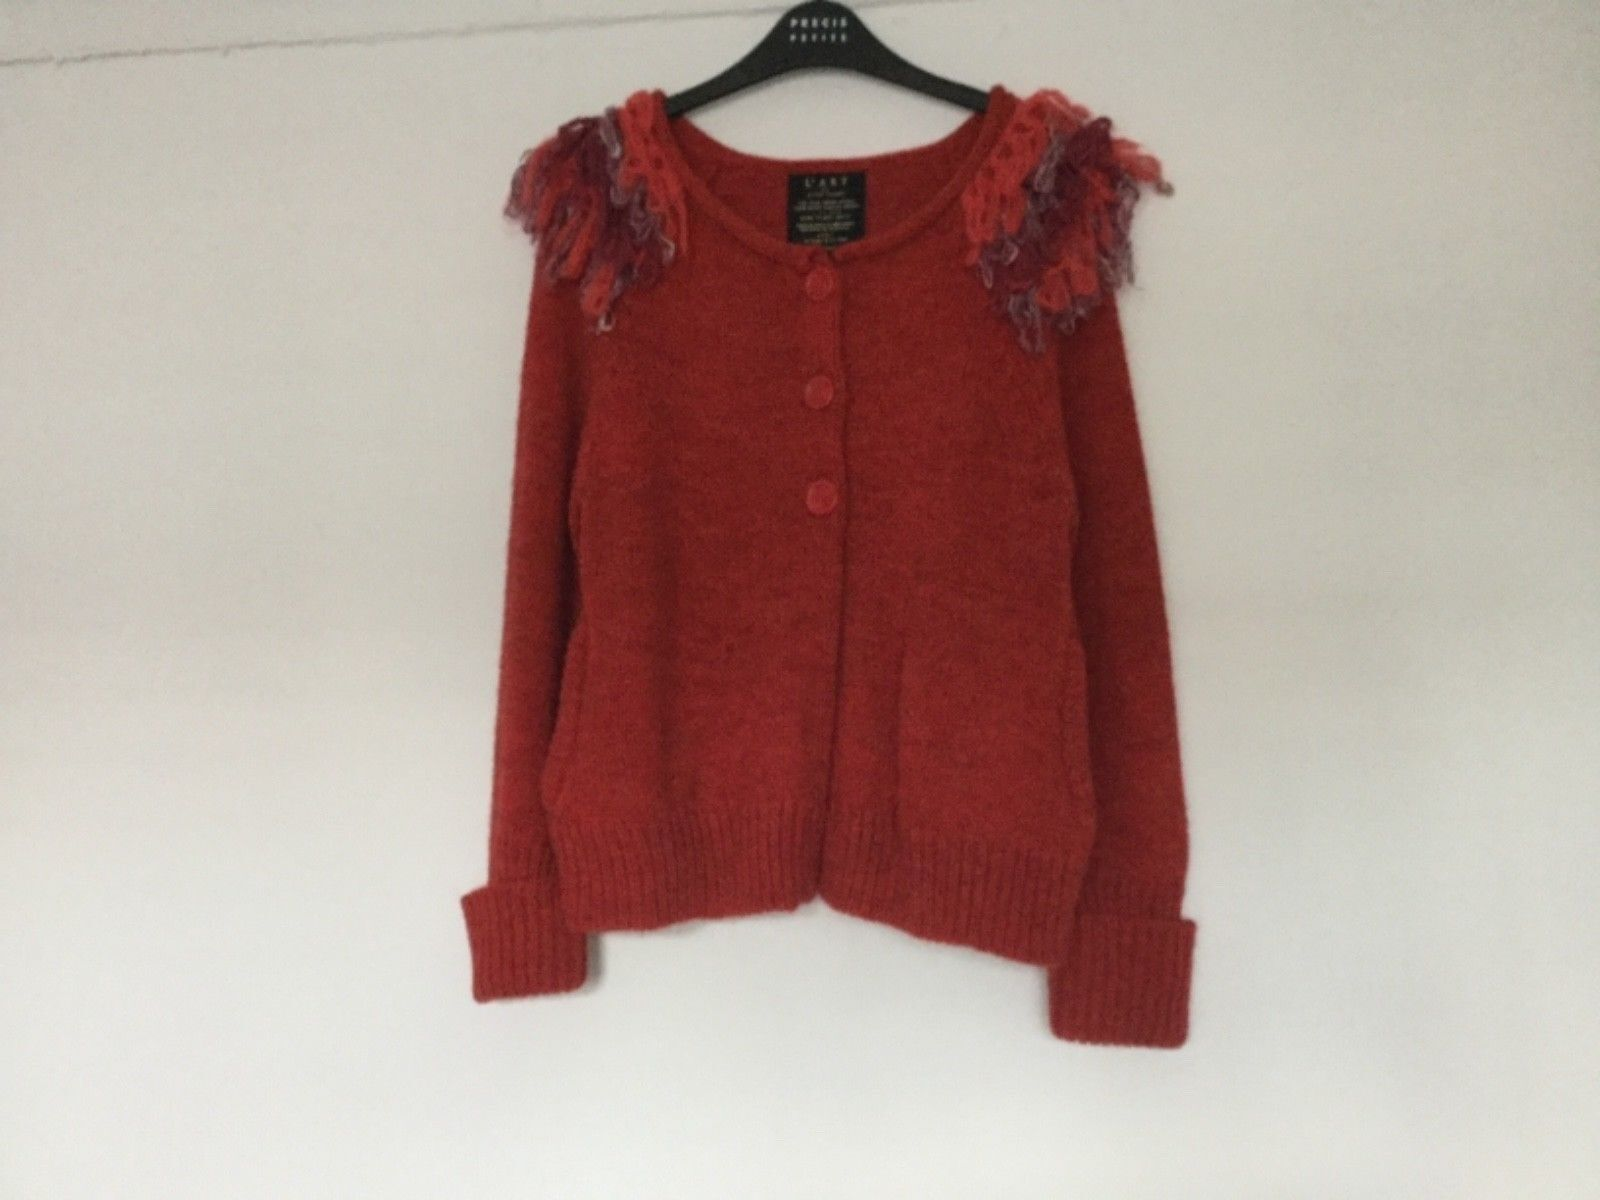 River island red cardigan size 14